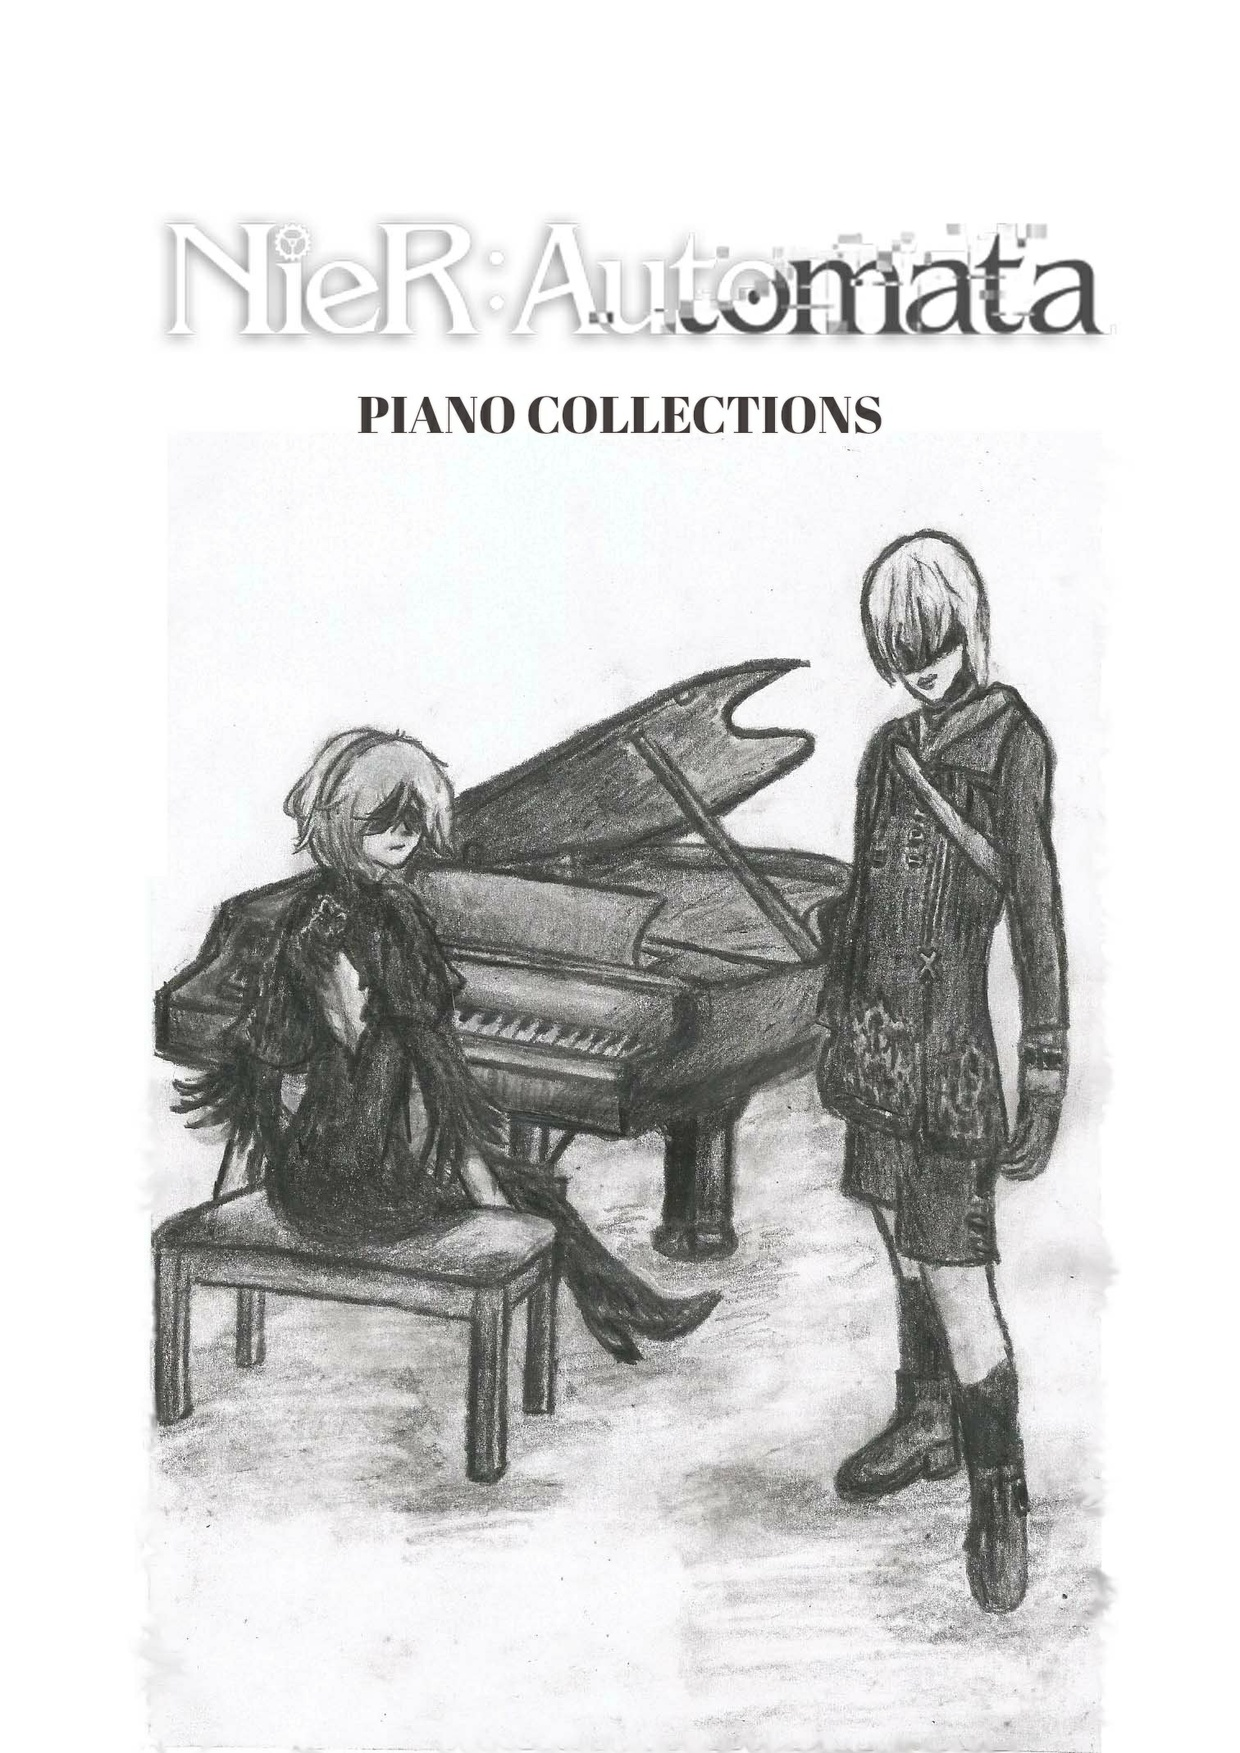 NieR Automata - Piano Collections